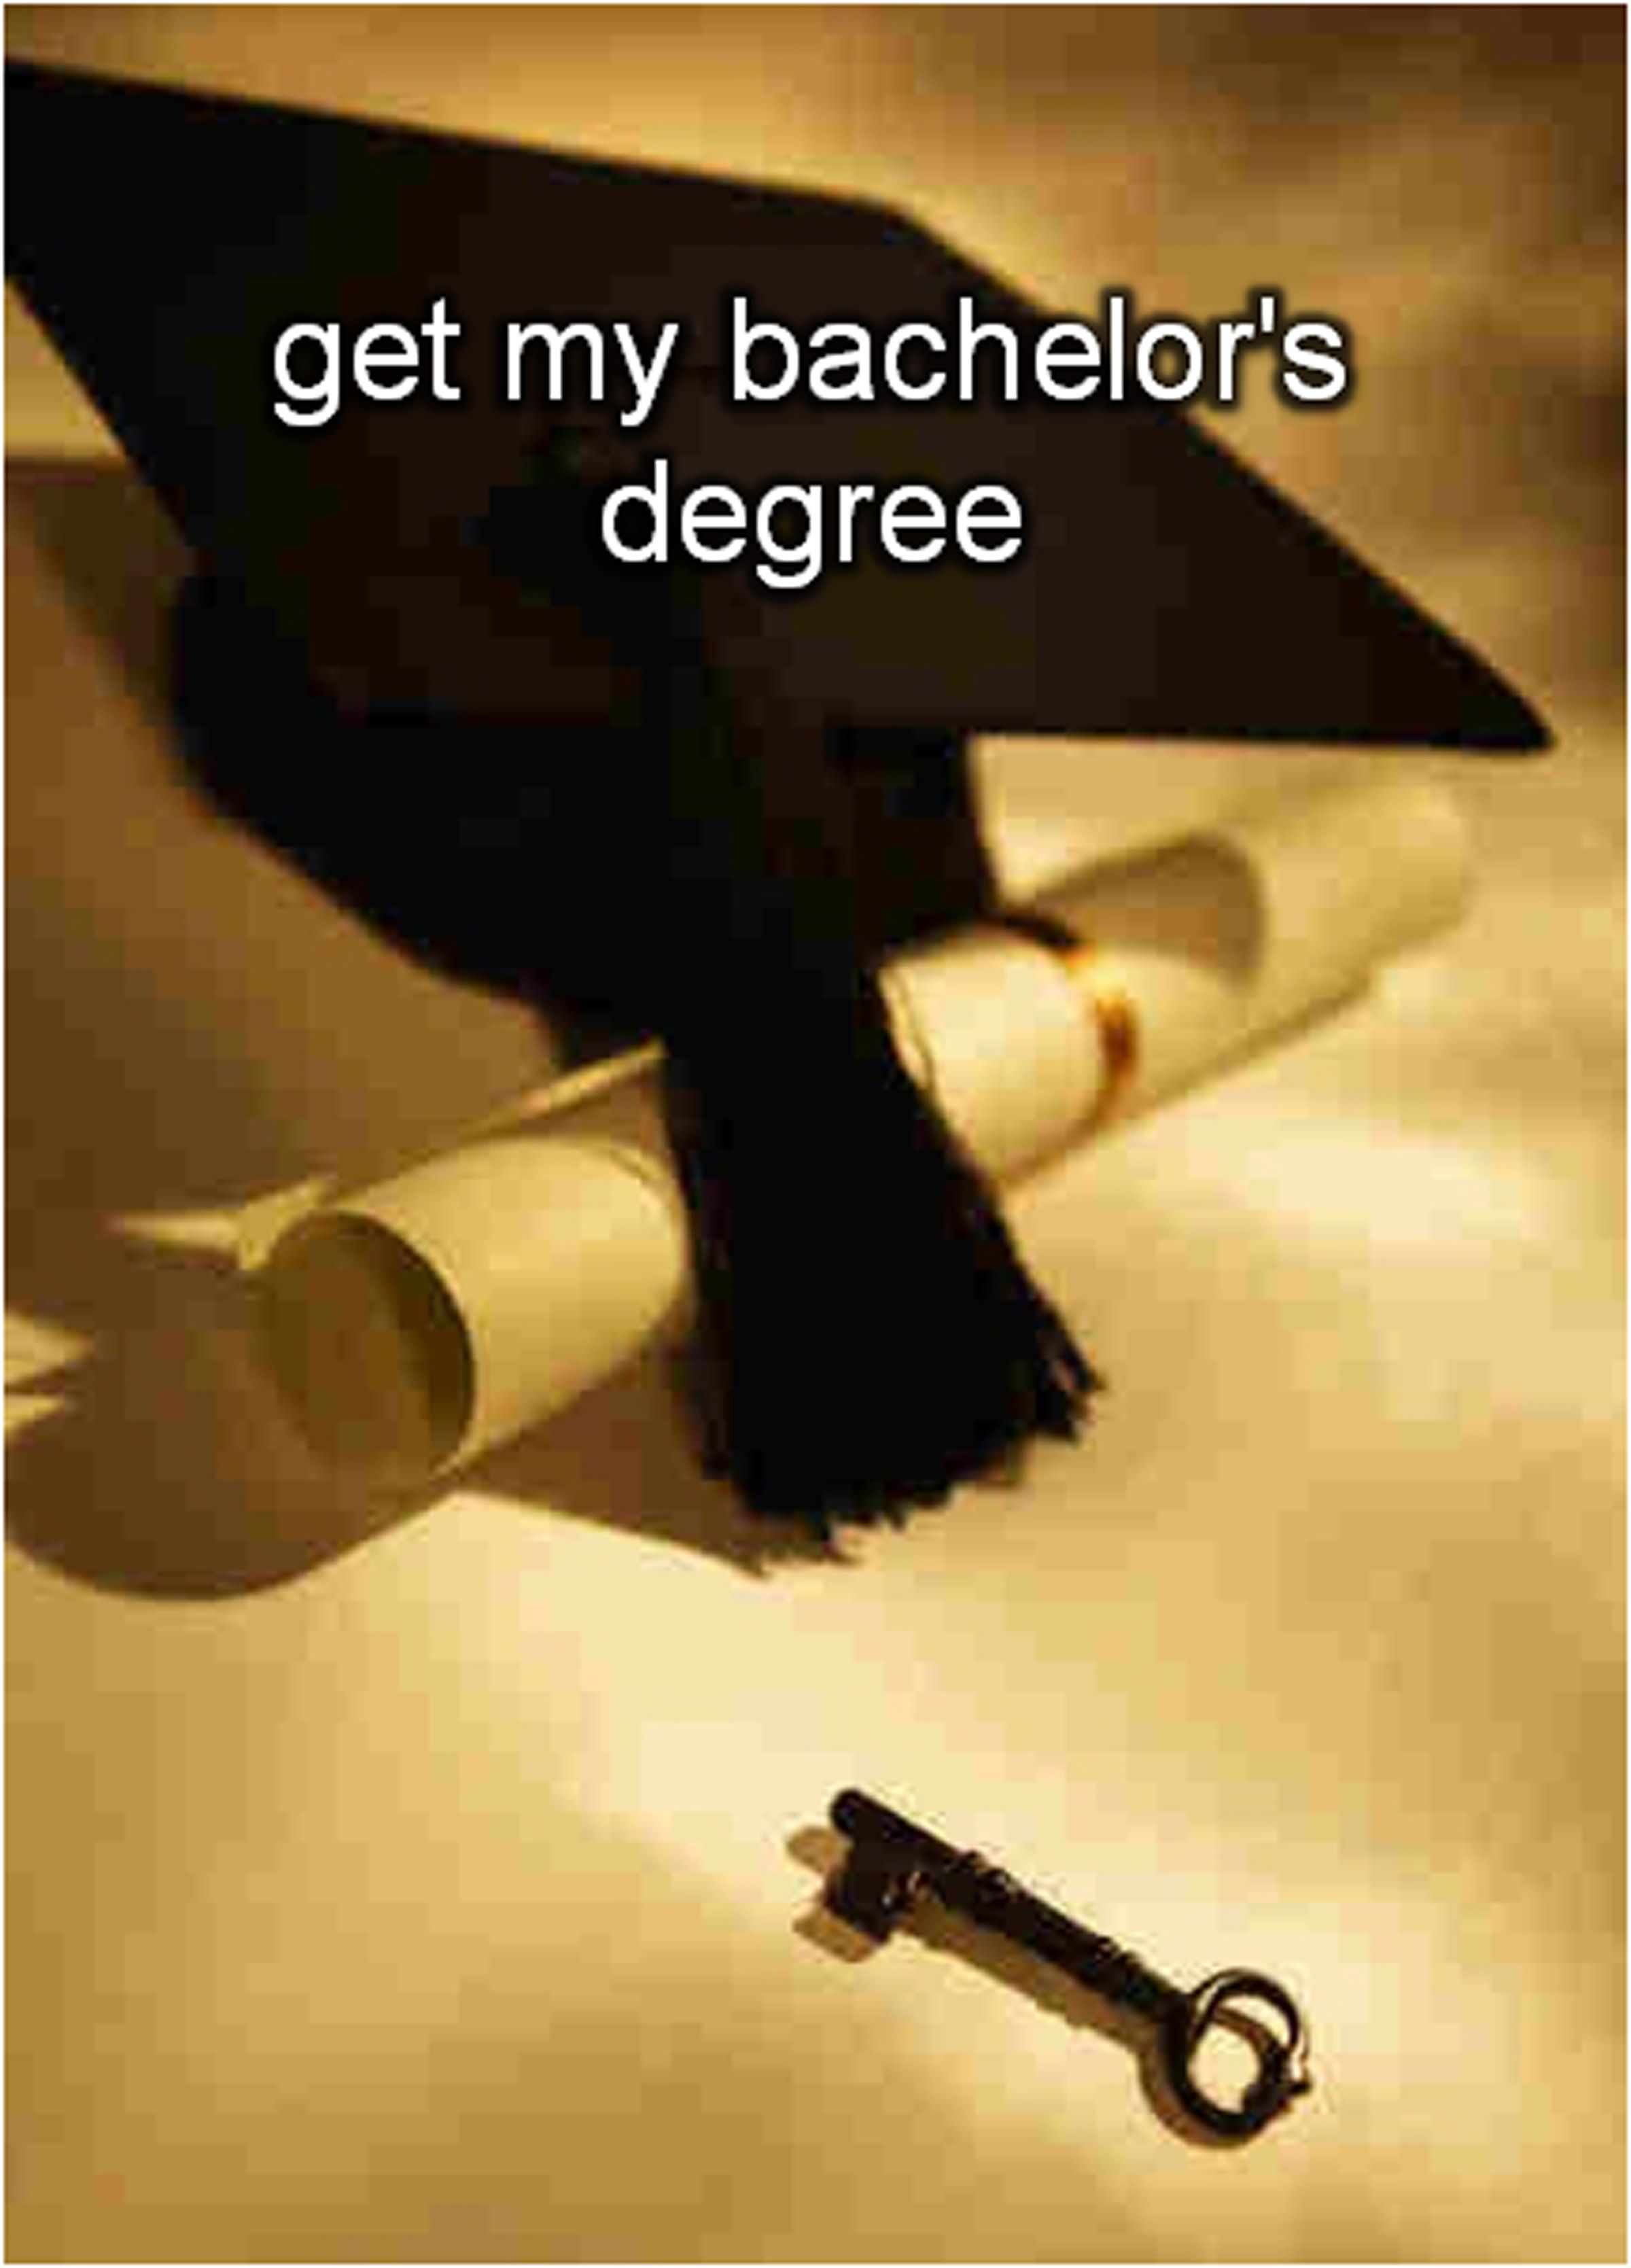 Should I try and go for a graduate degree or a second bachelor's?